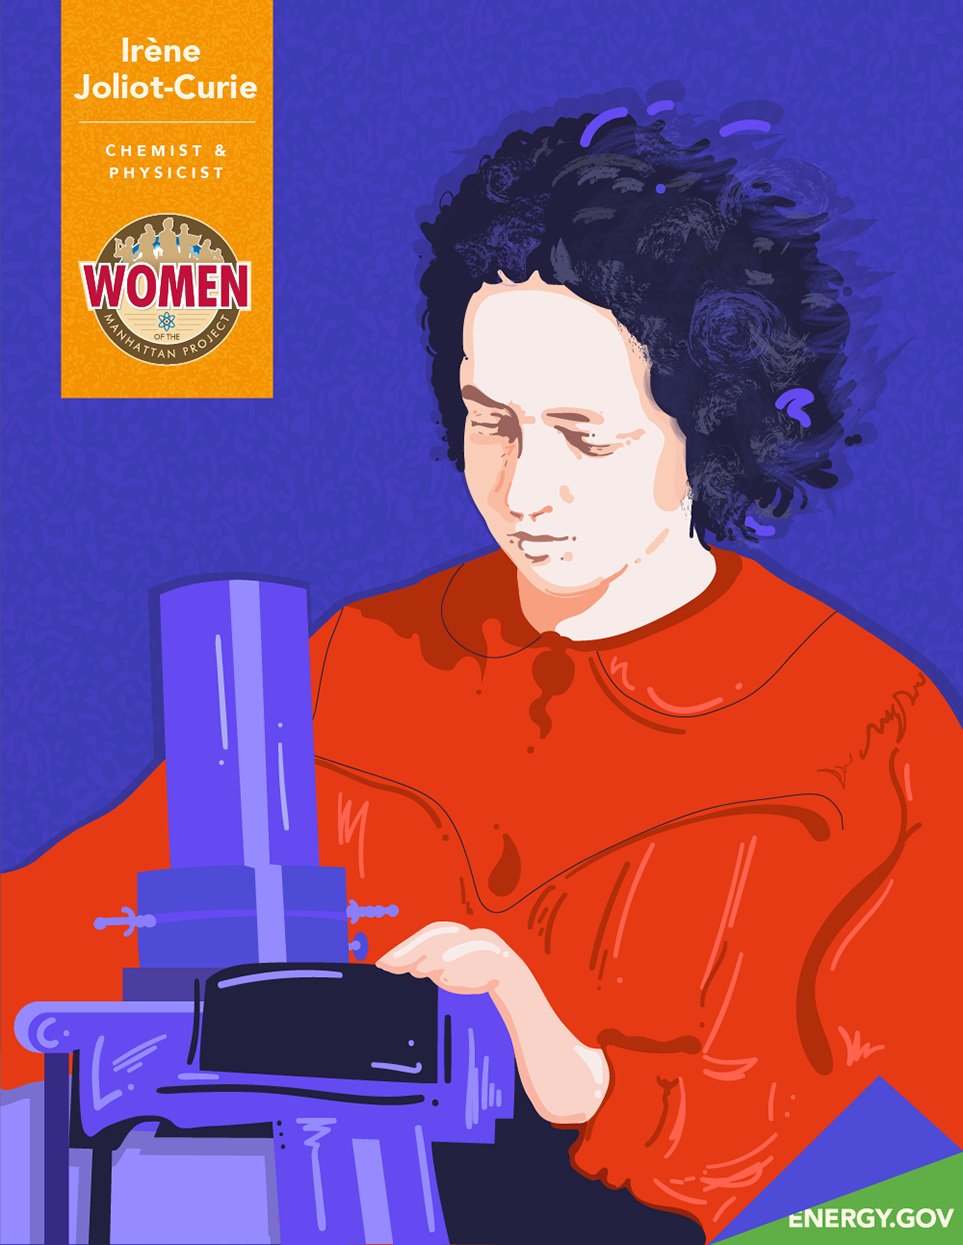 Irene Joliot Curie illustration